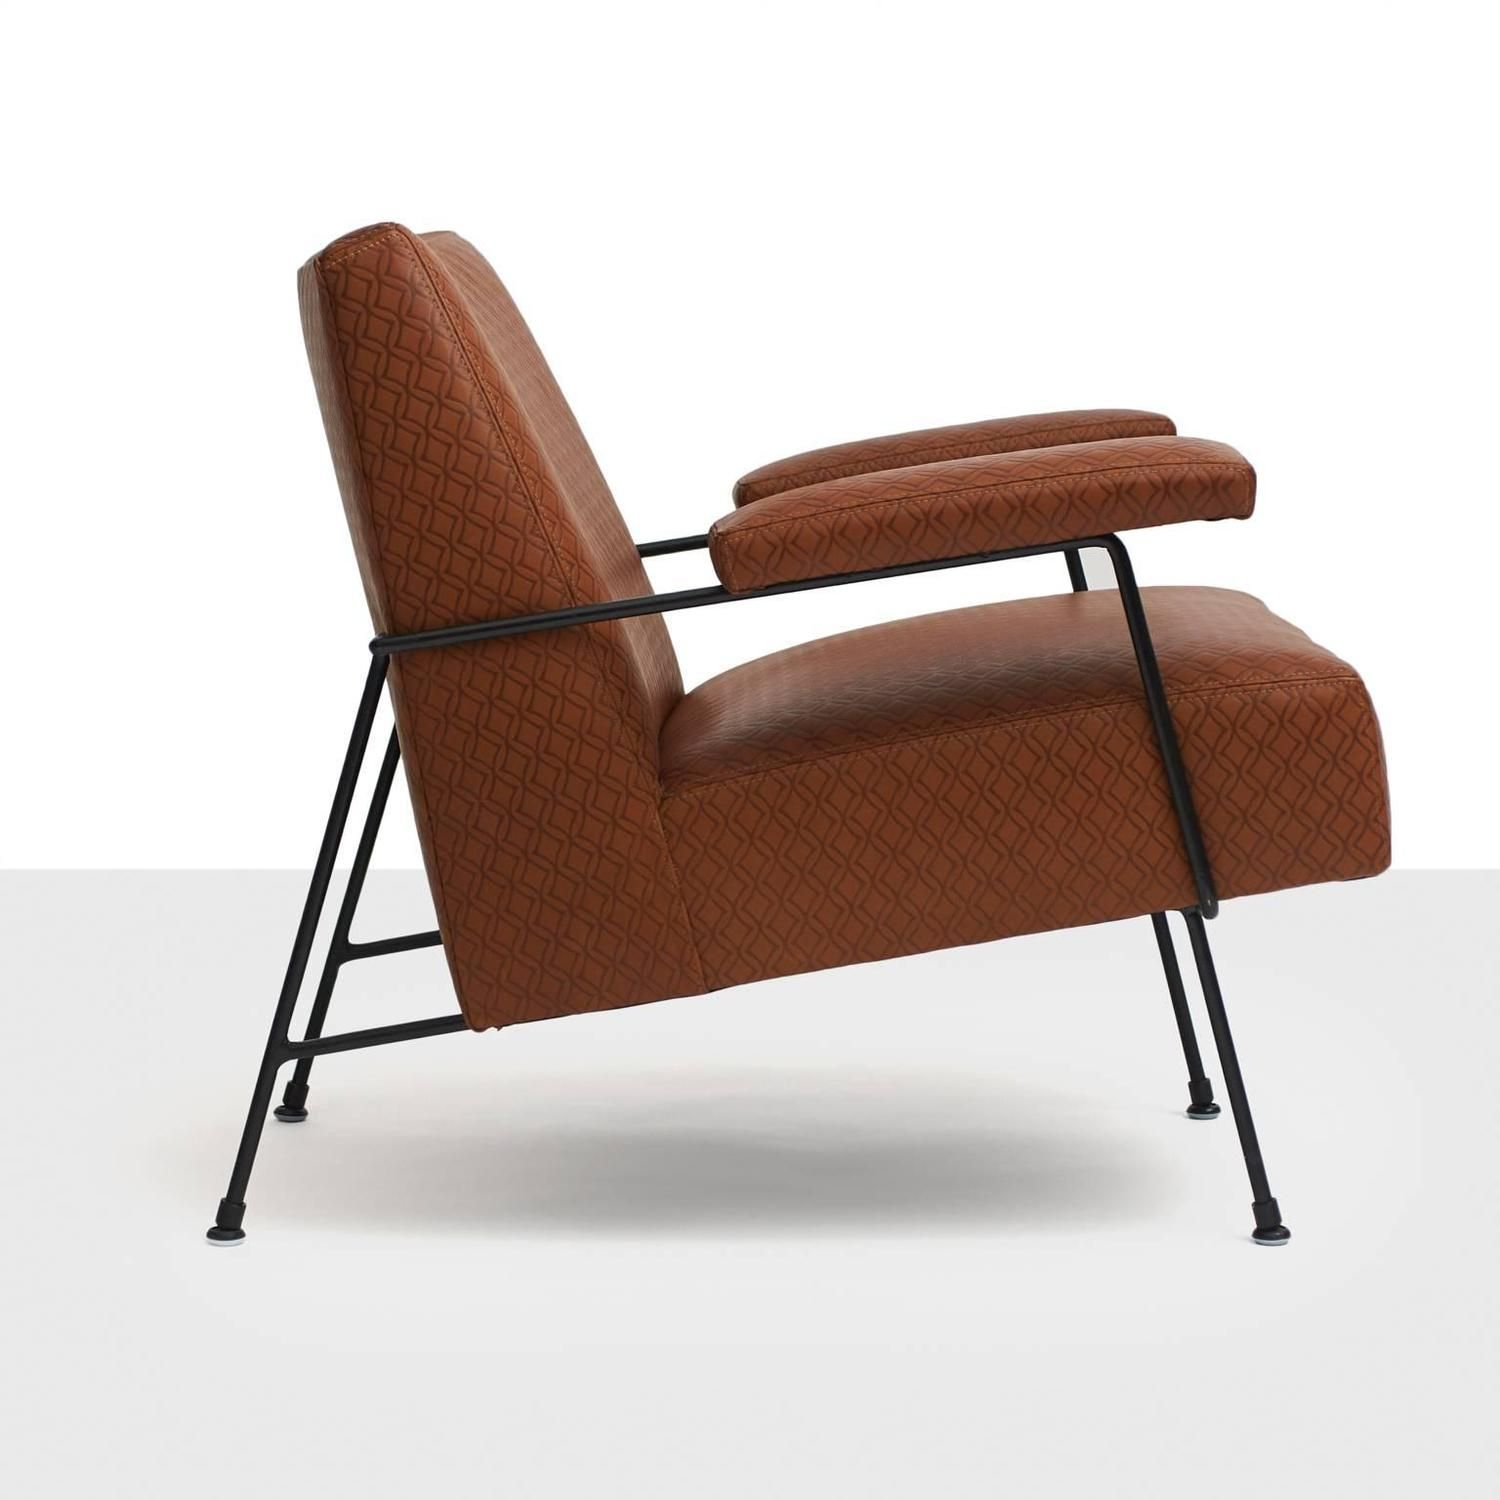 Milo Baughman Iron Framed Lounge Chair for Pacific Iron Works